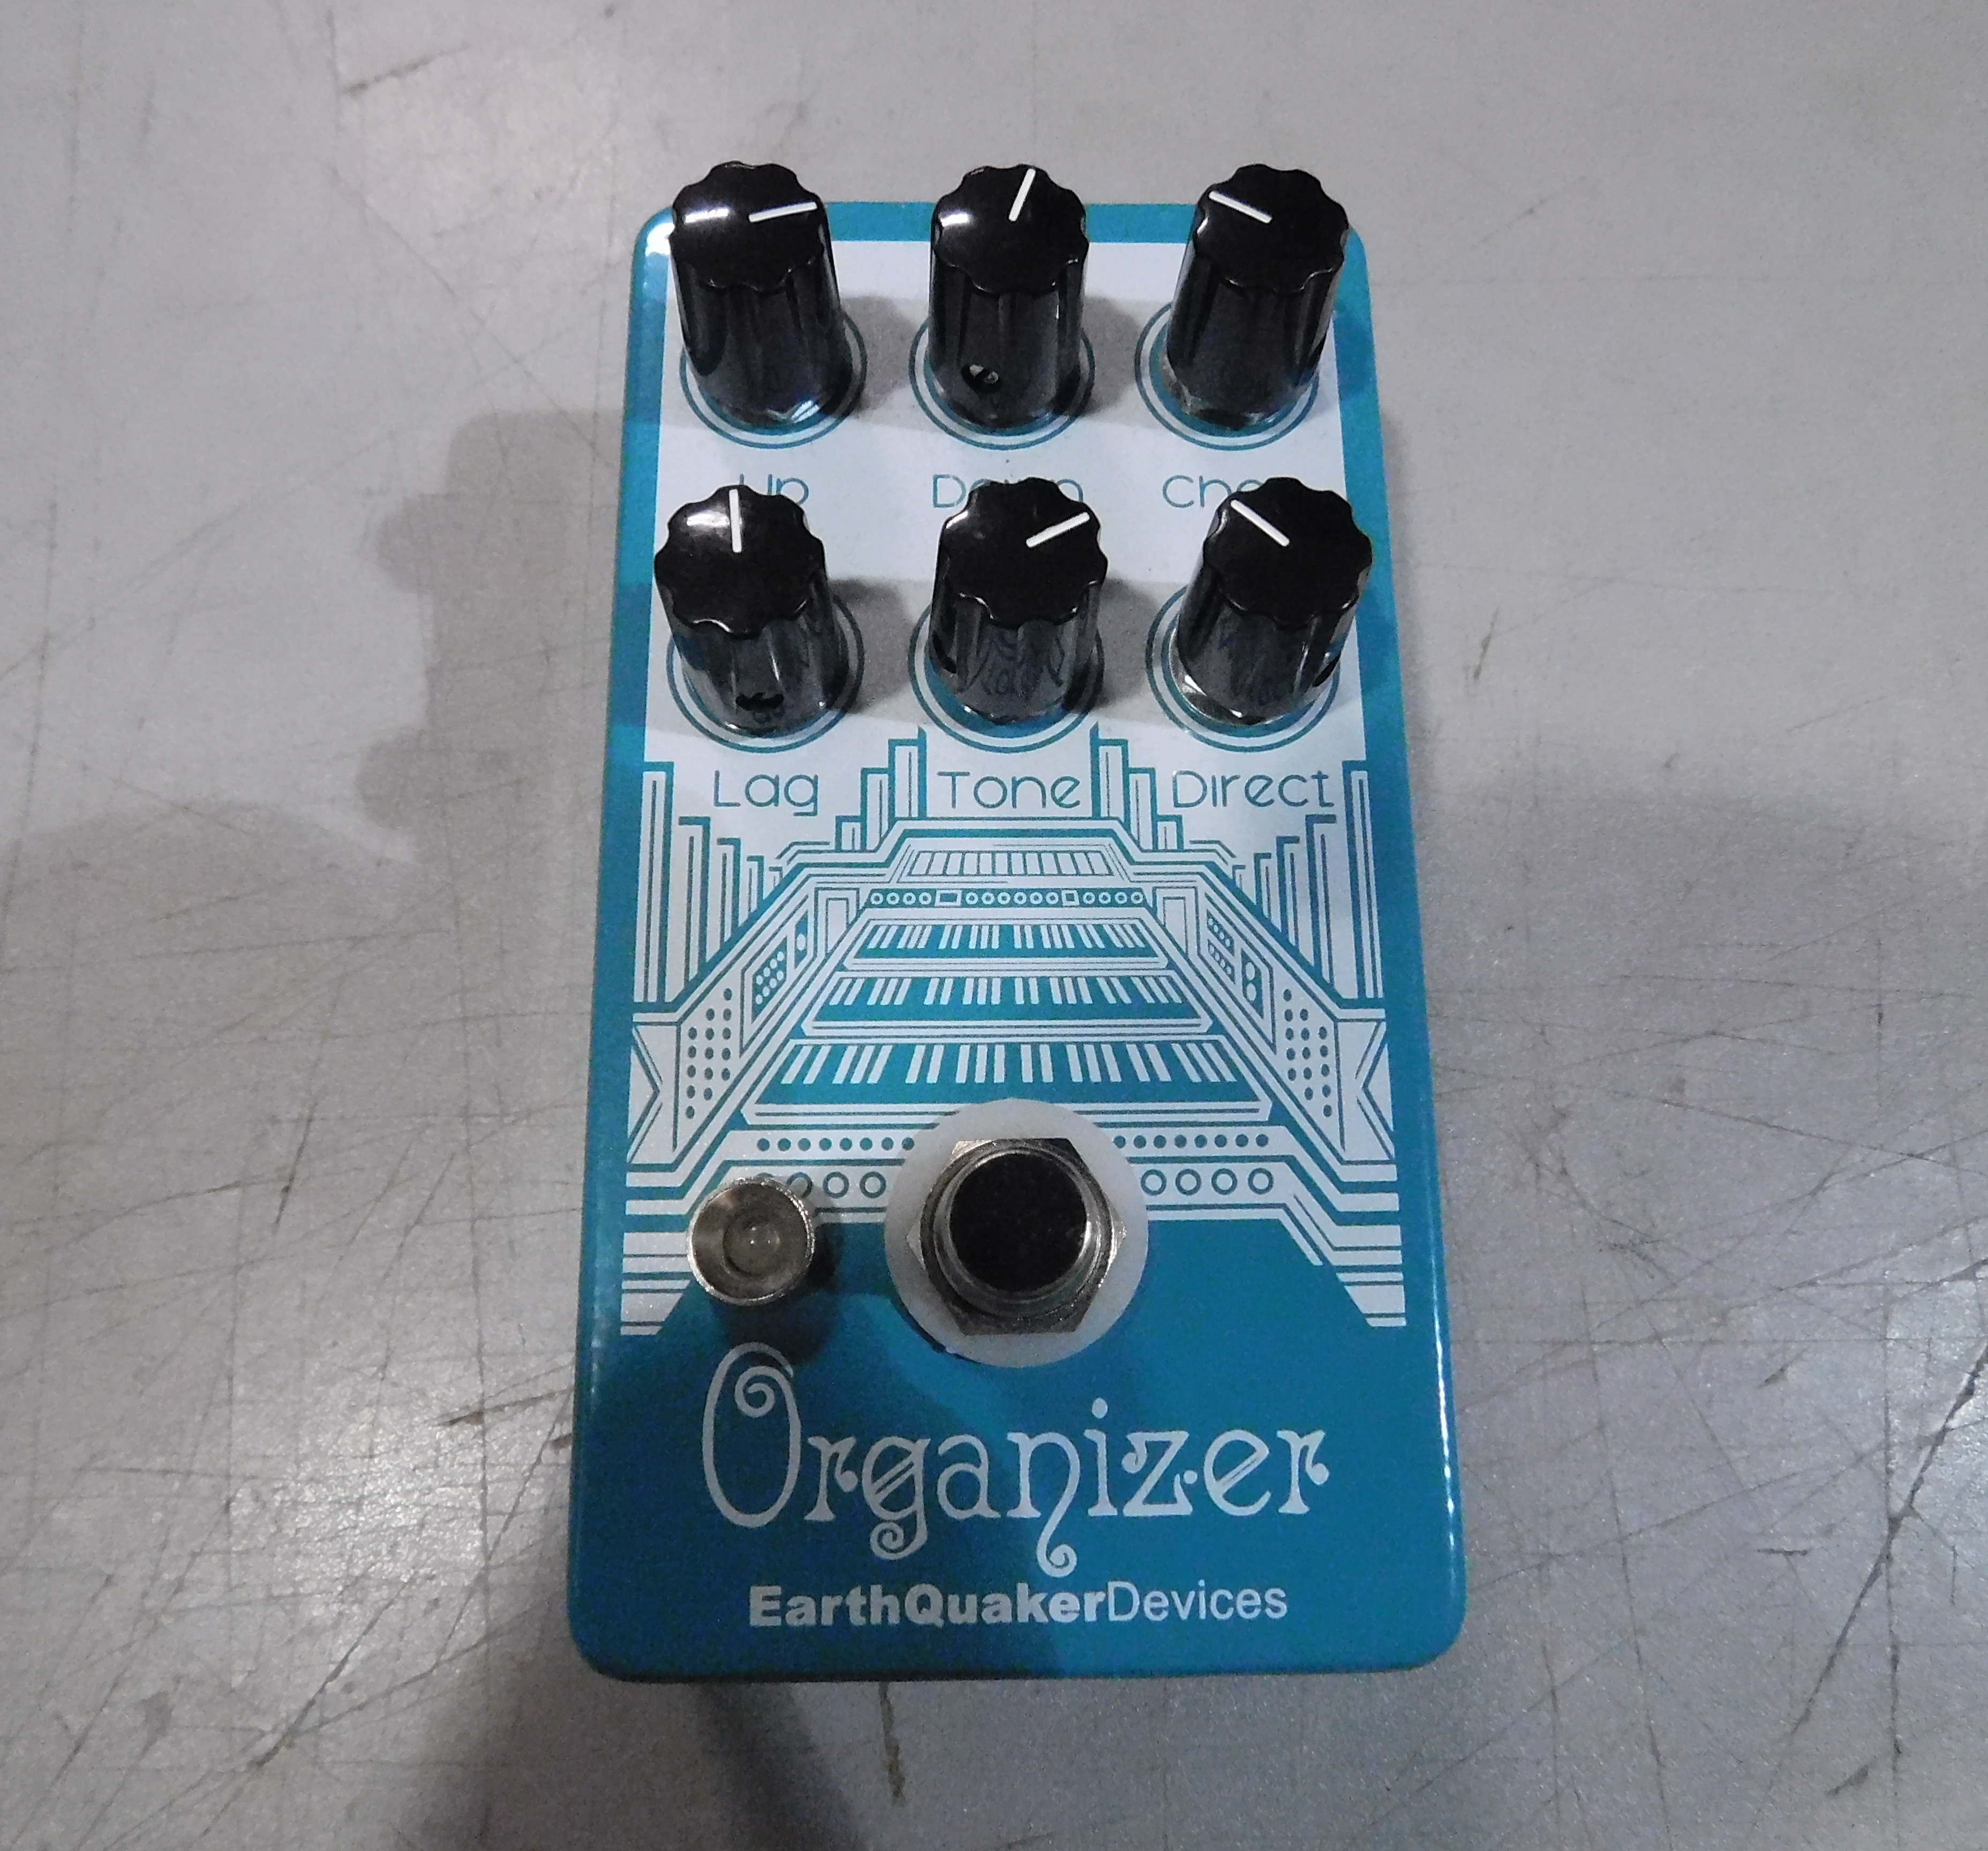 EARTHQUAKER DEVICES ORGANIZER Guitar Effect Pedal